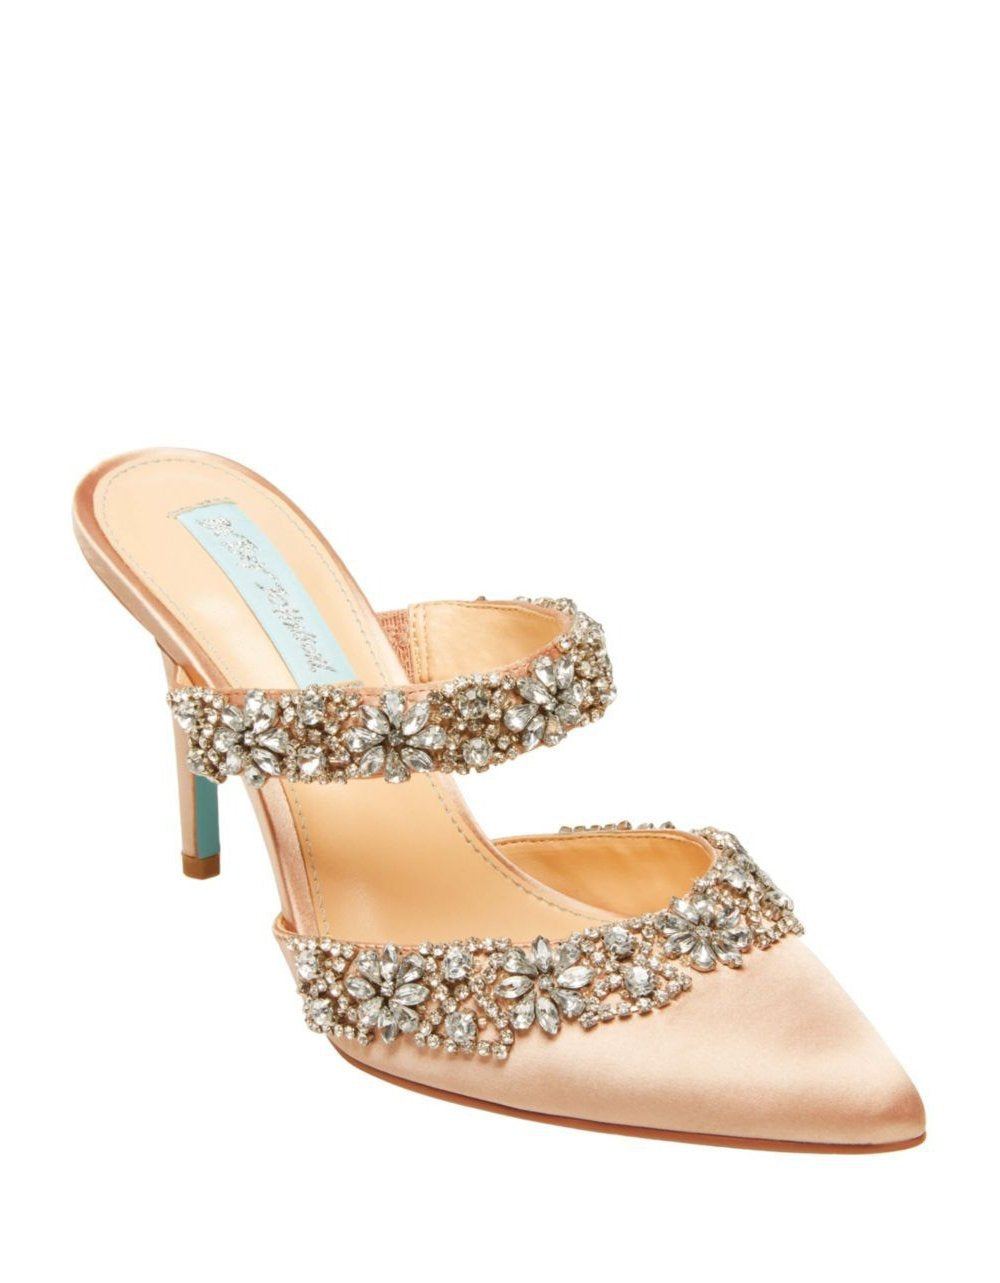 SB-ELINA NUDE SATIN - SHOES - Betsey Johnson